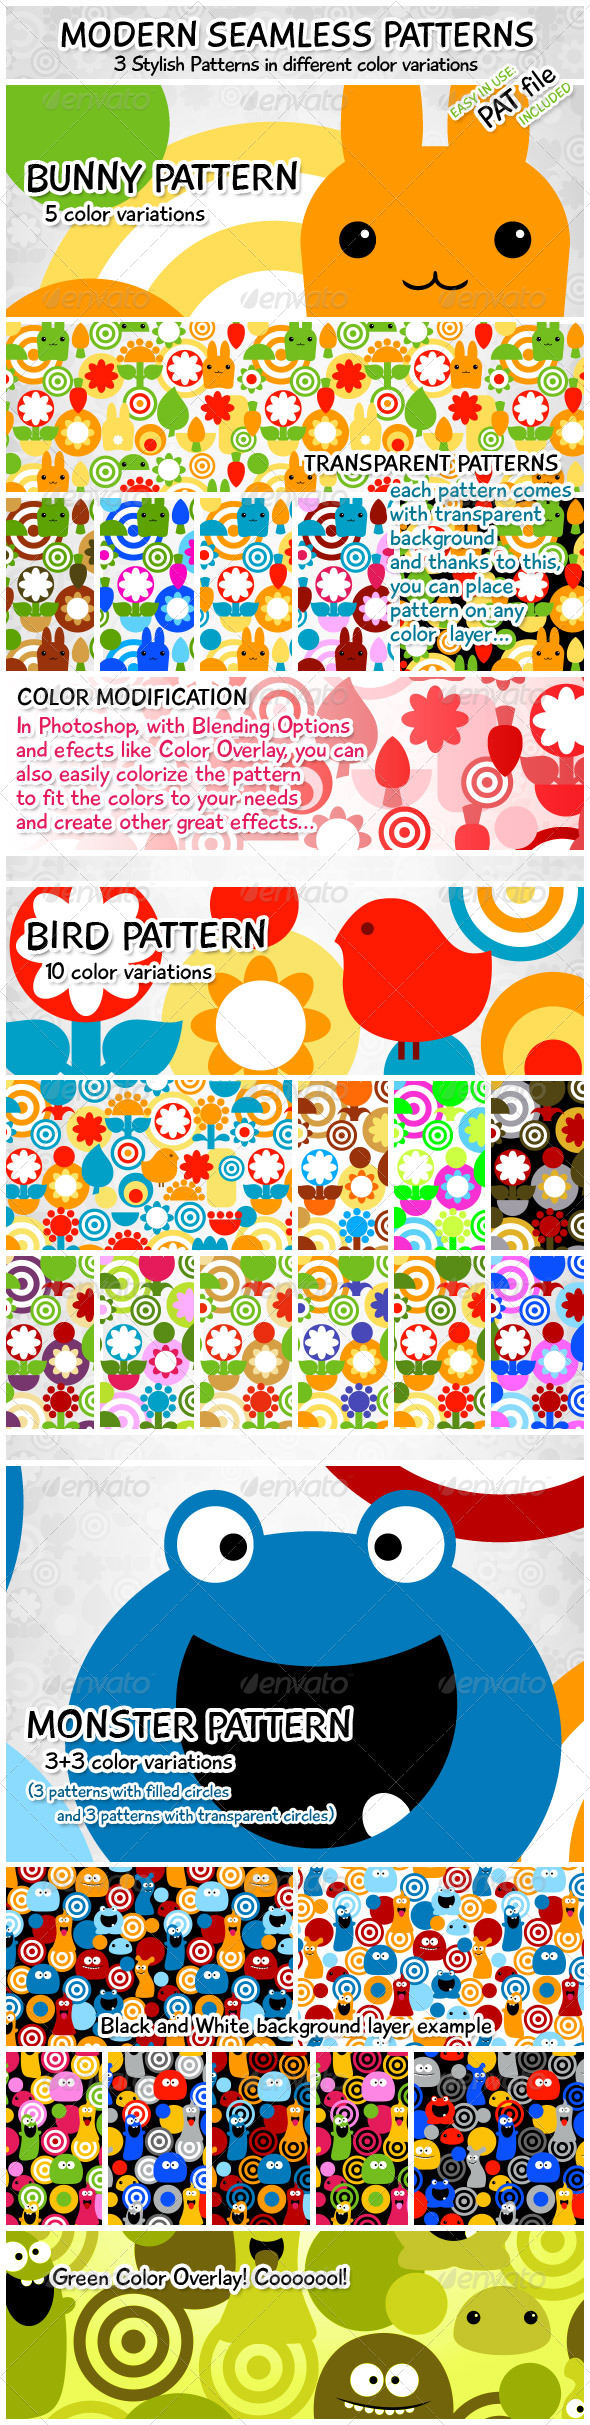 Modern Seamless Patterns – Bird, Bunny, Monster - Miscellaneous Textures / Fills / Patterns